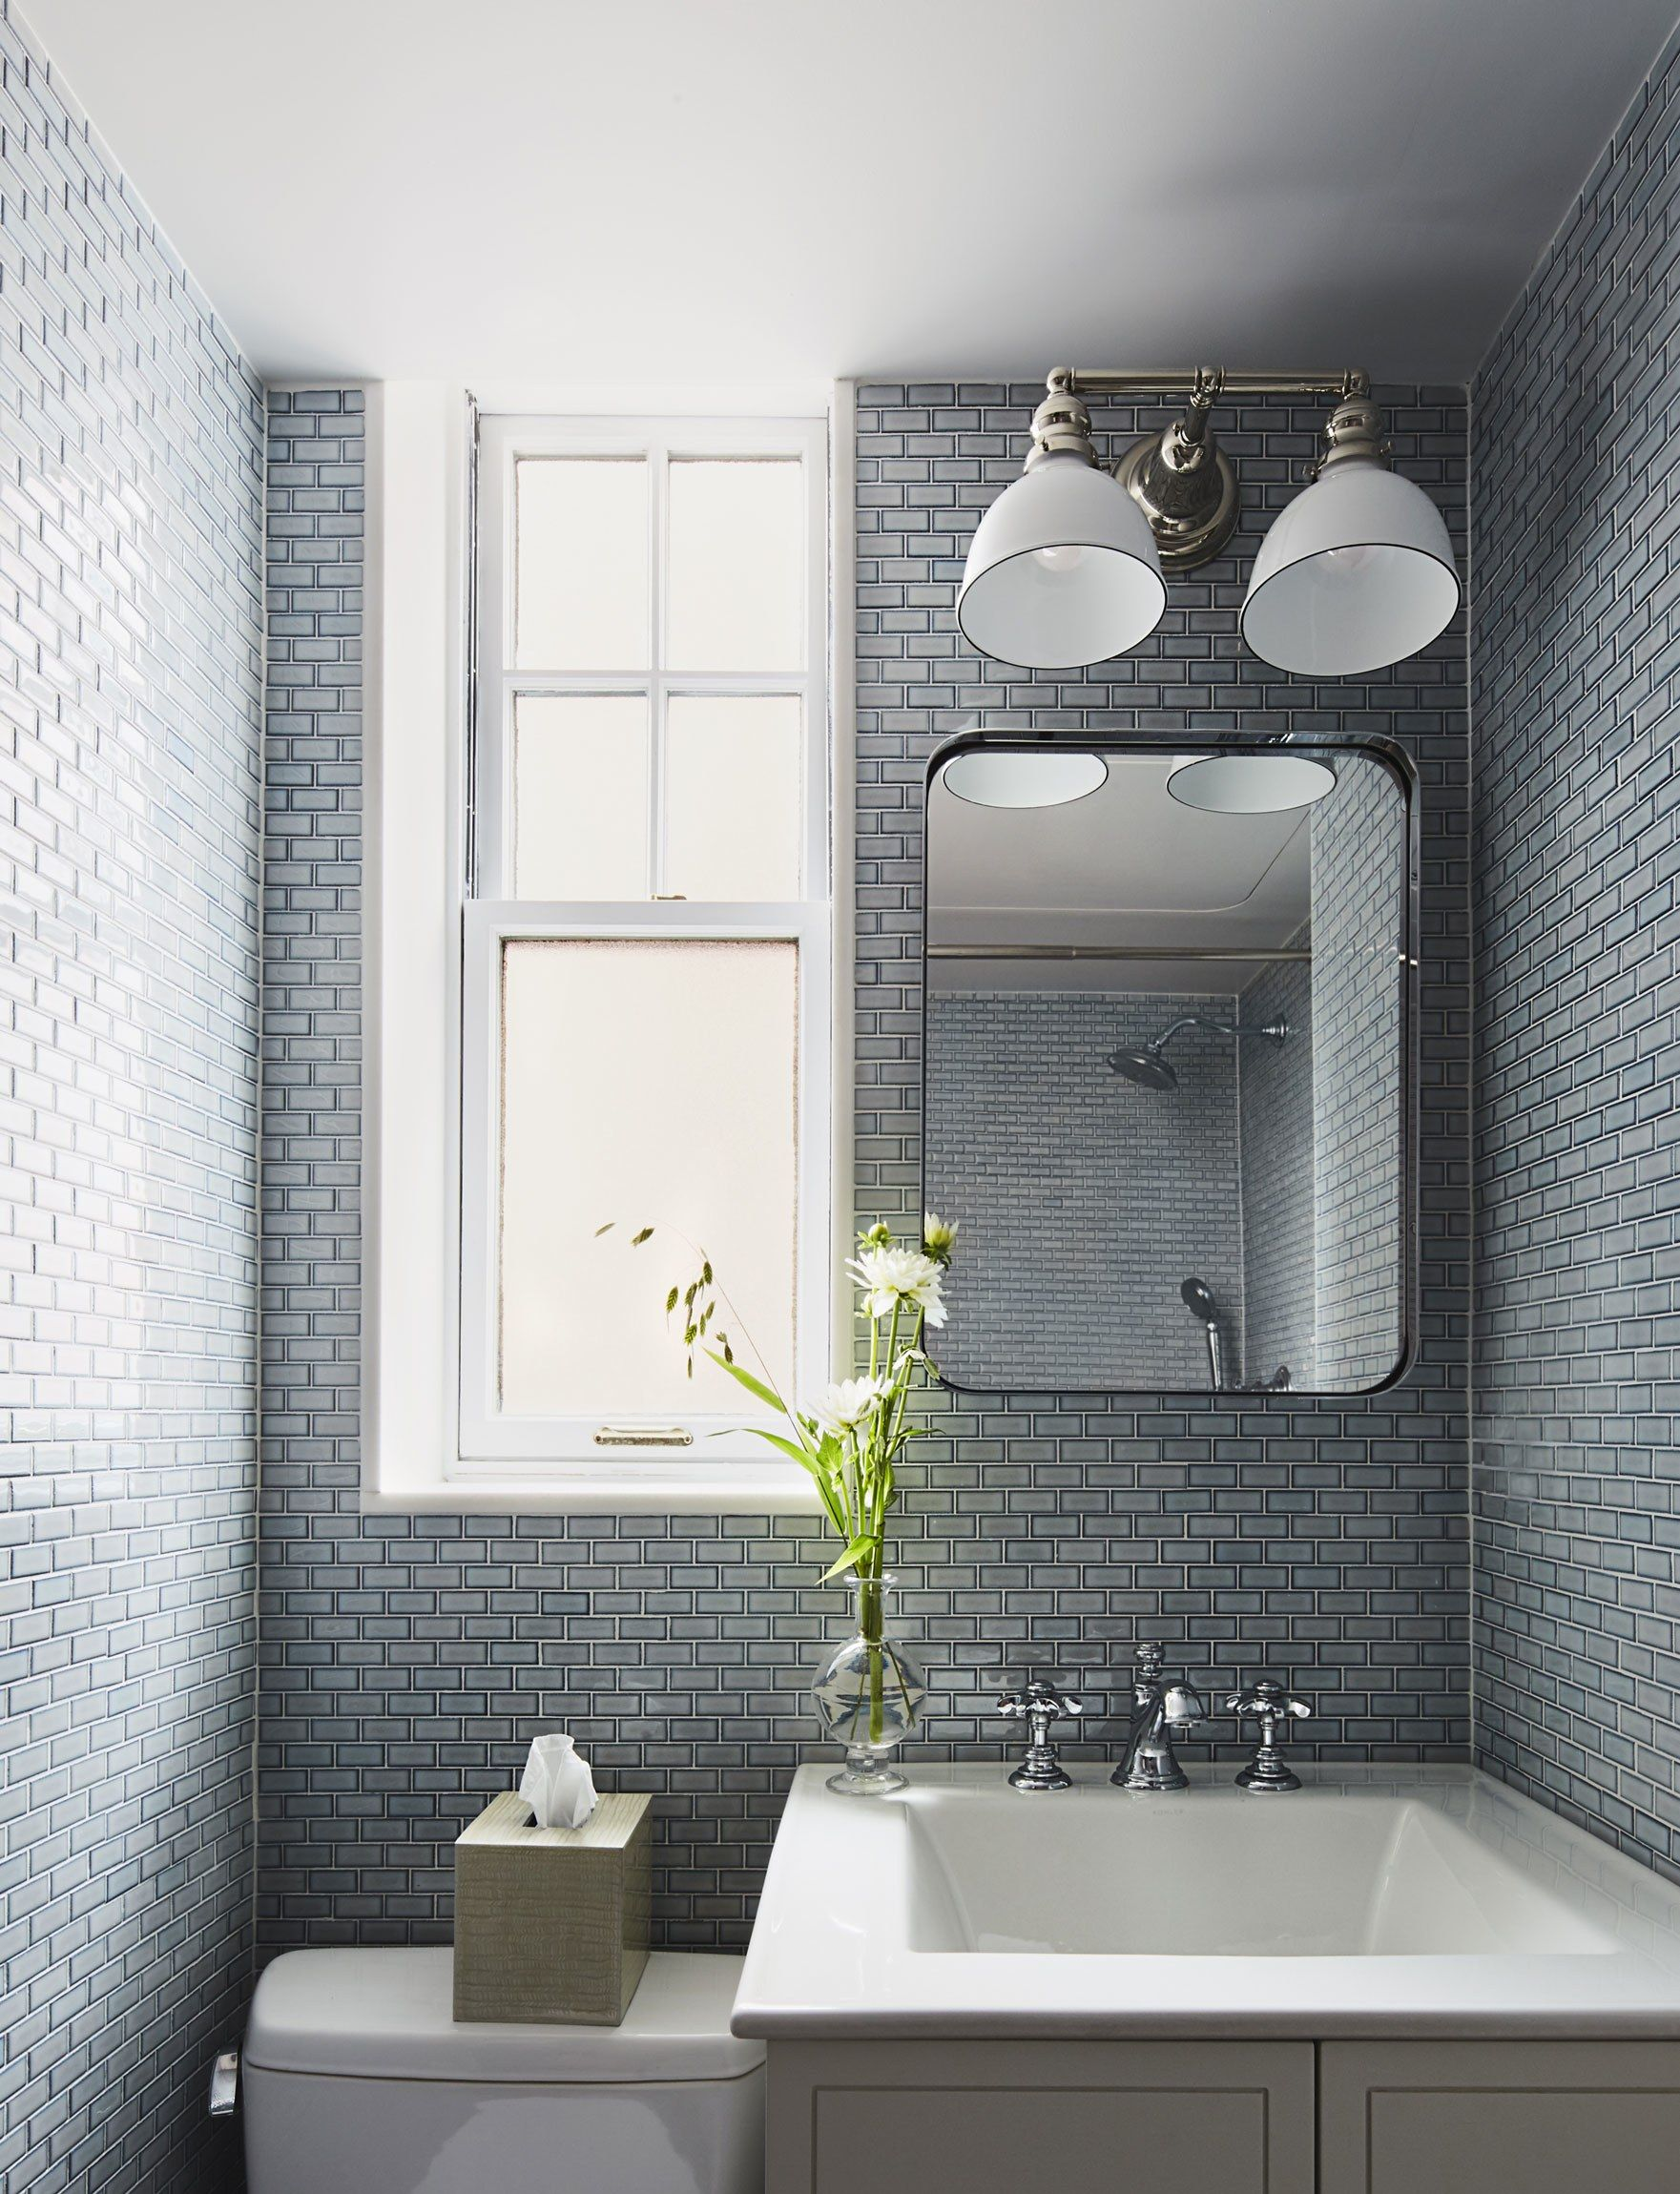 Aqua Bagno Loft Design Waschtisch - Ks.70 This Tile Trick Is A Game Changer For Small Bathrooms De Luxe